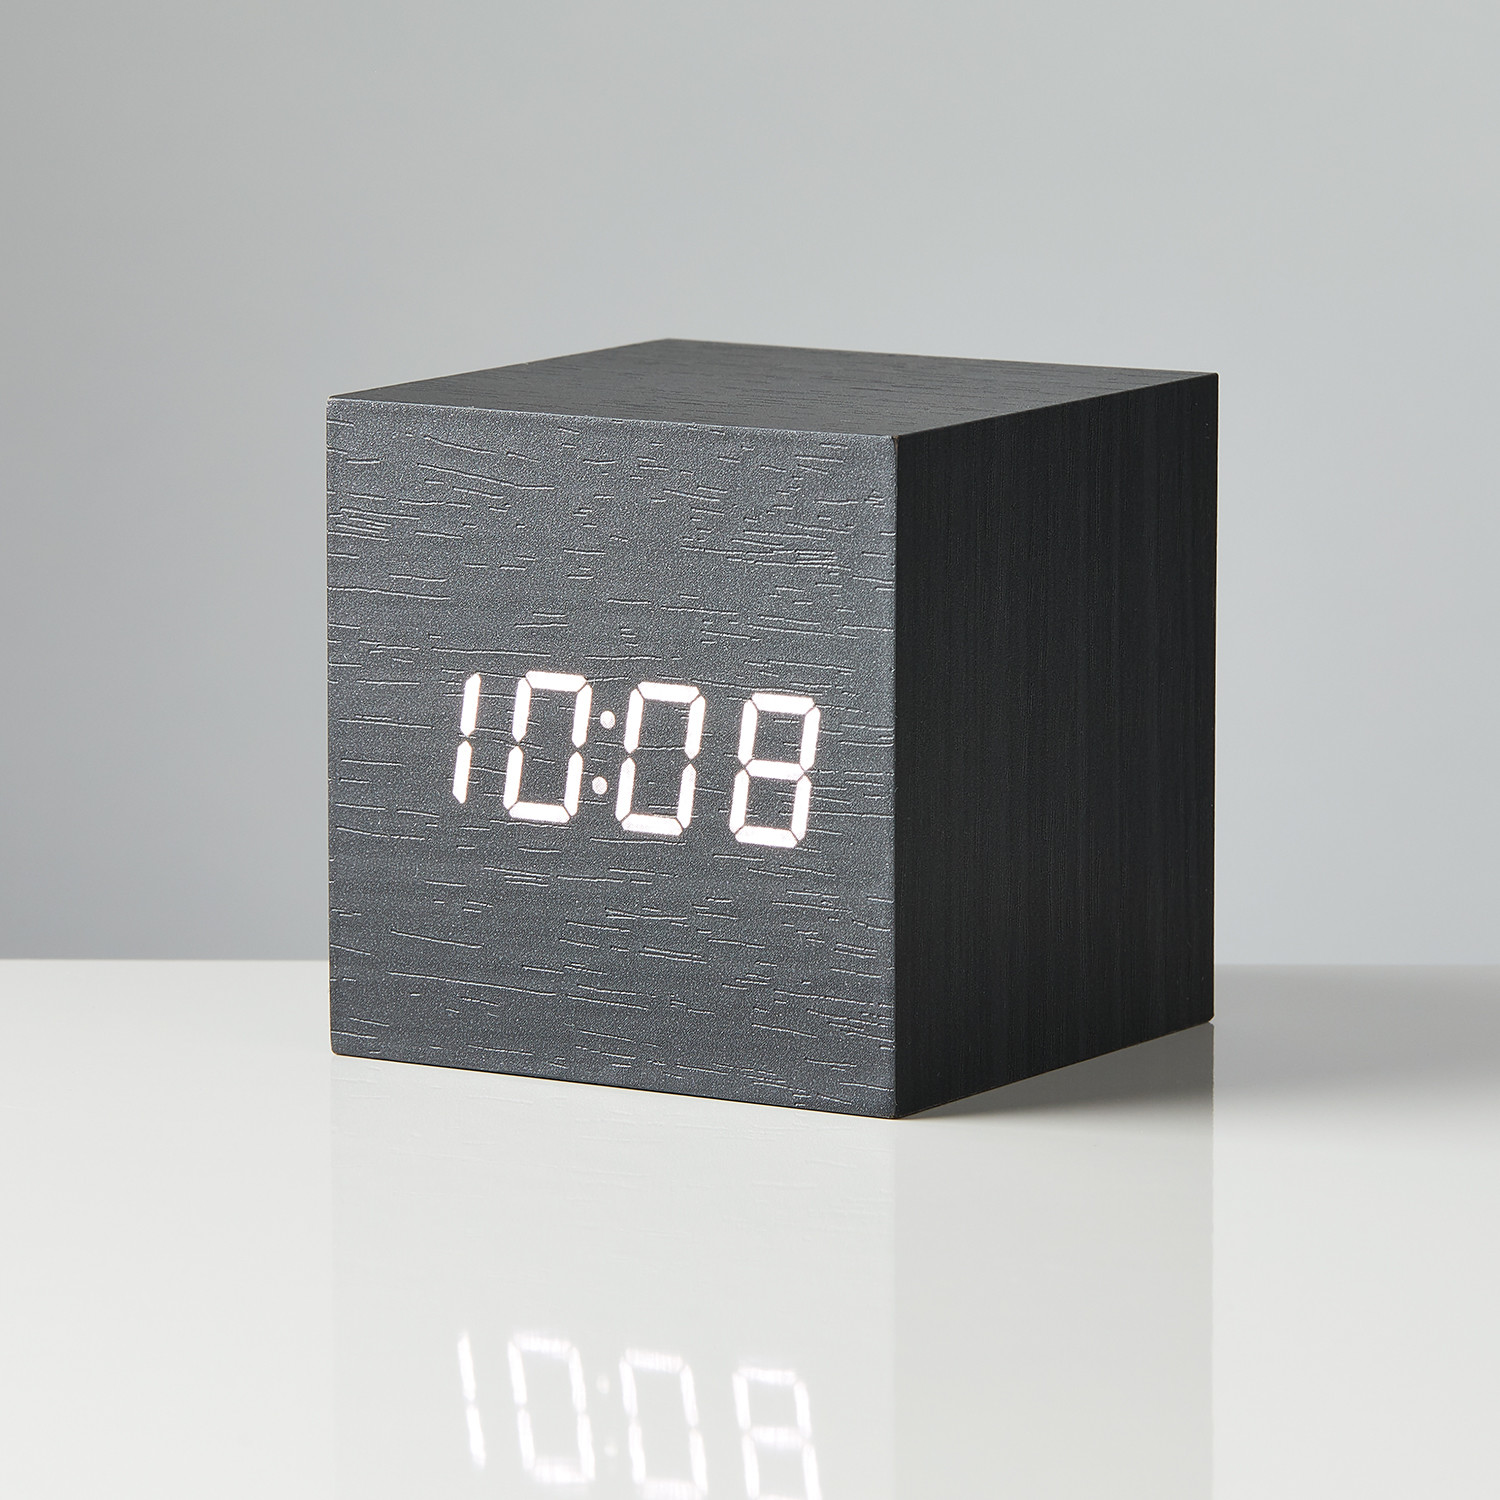 Led Box Block Clock Black With White Led Box And Accent Touch